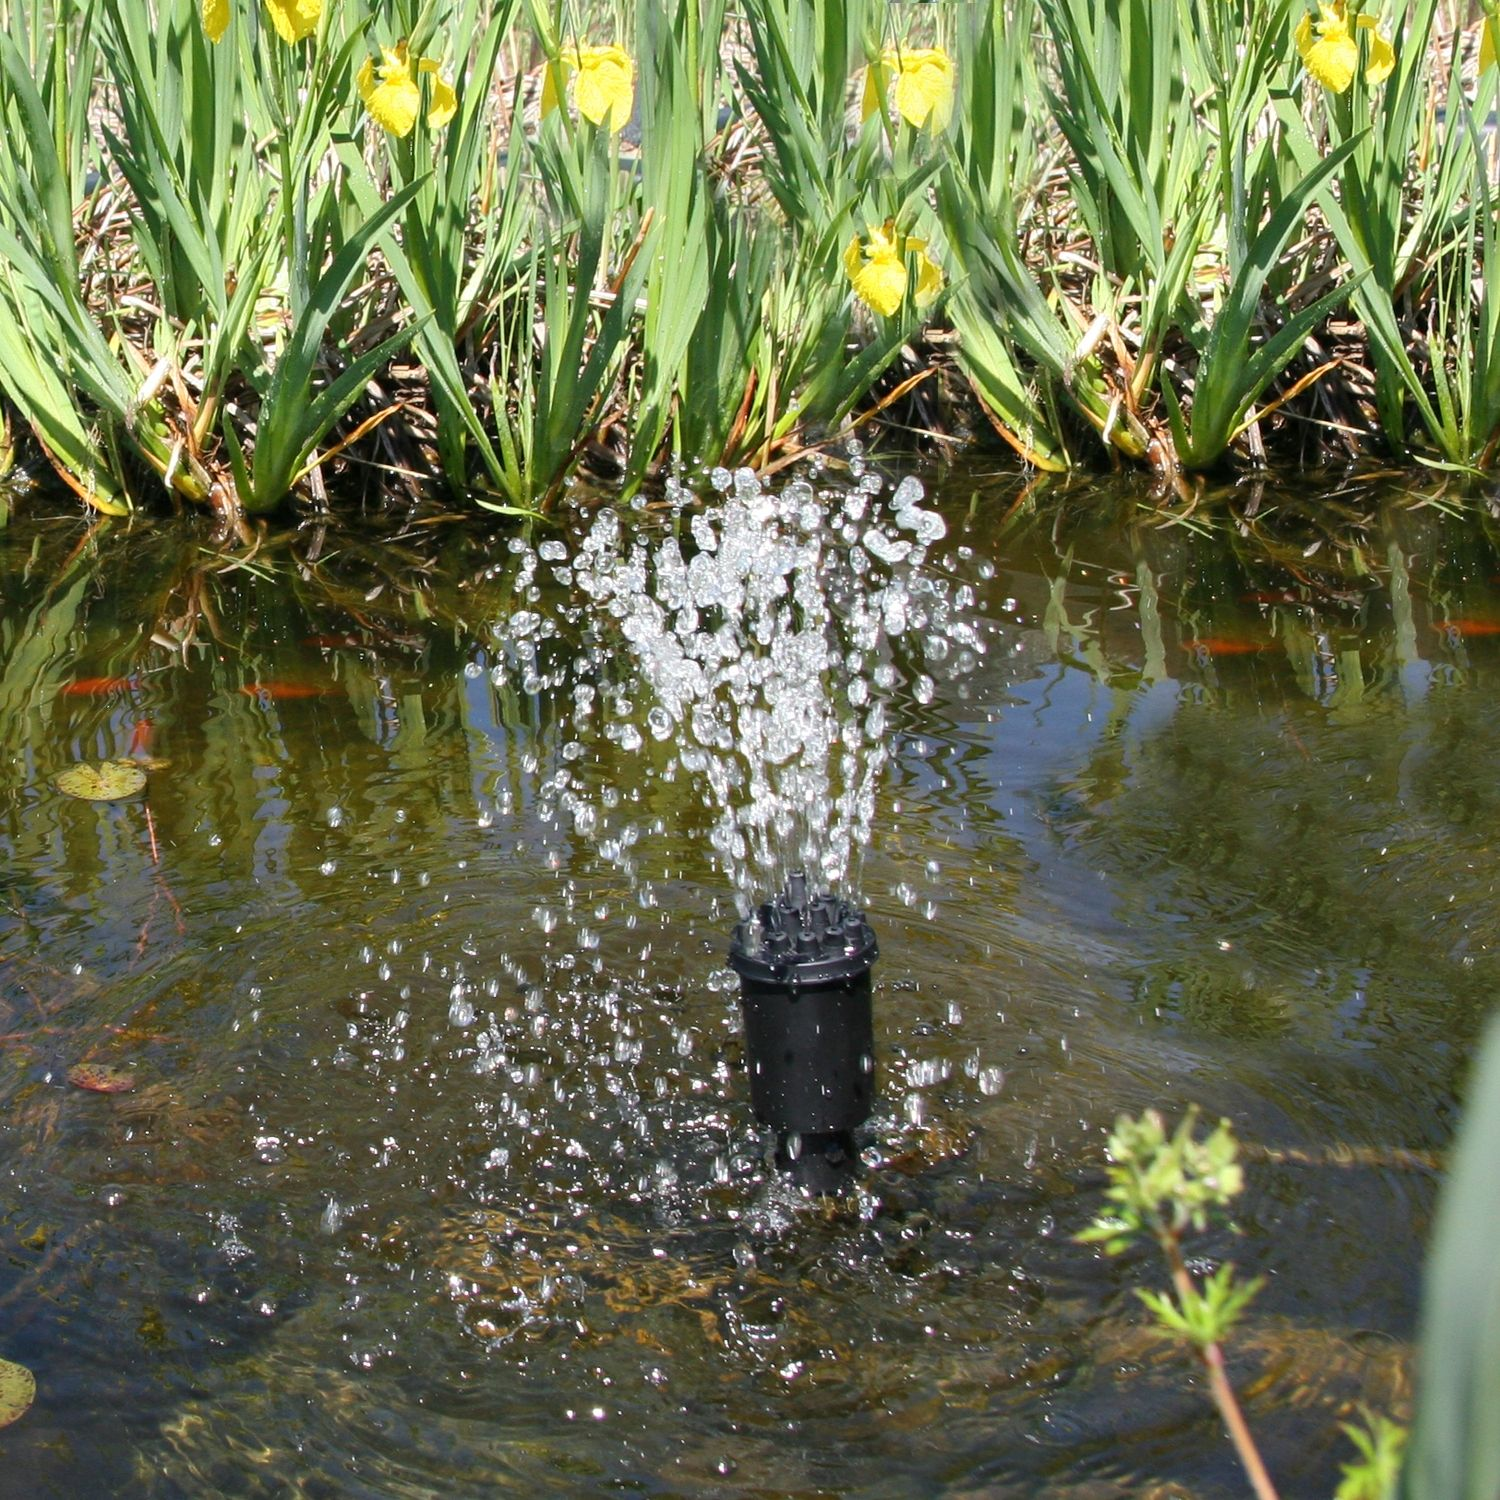 The spray nozzle is a classic design which adds soothing sound and aeration to your pond. (Model NK3 - Spray)